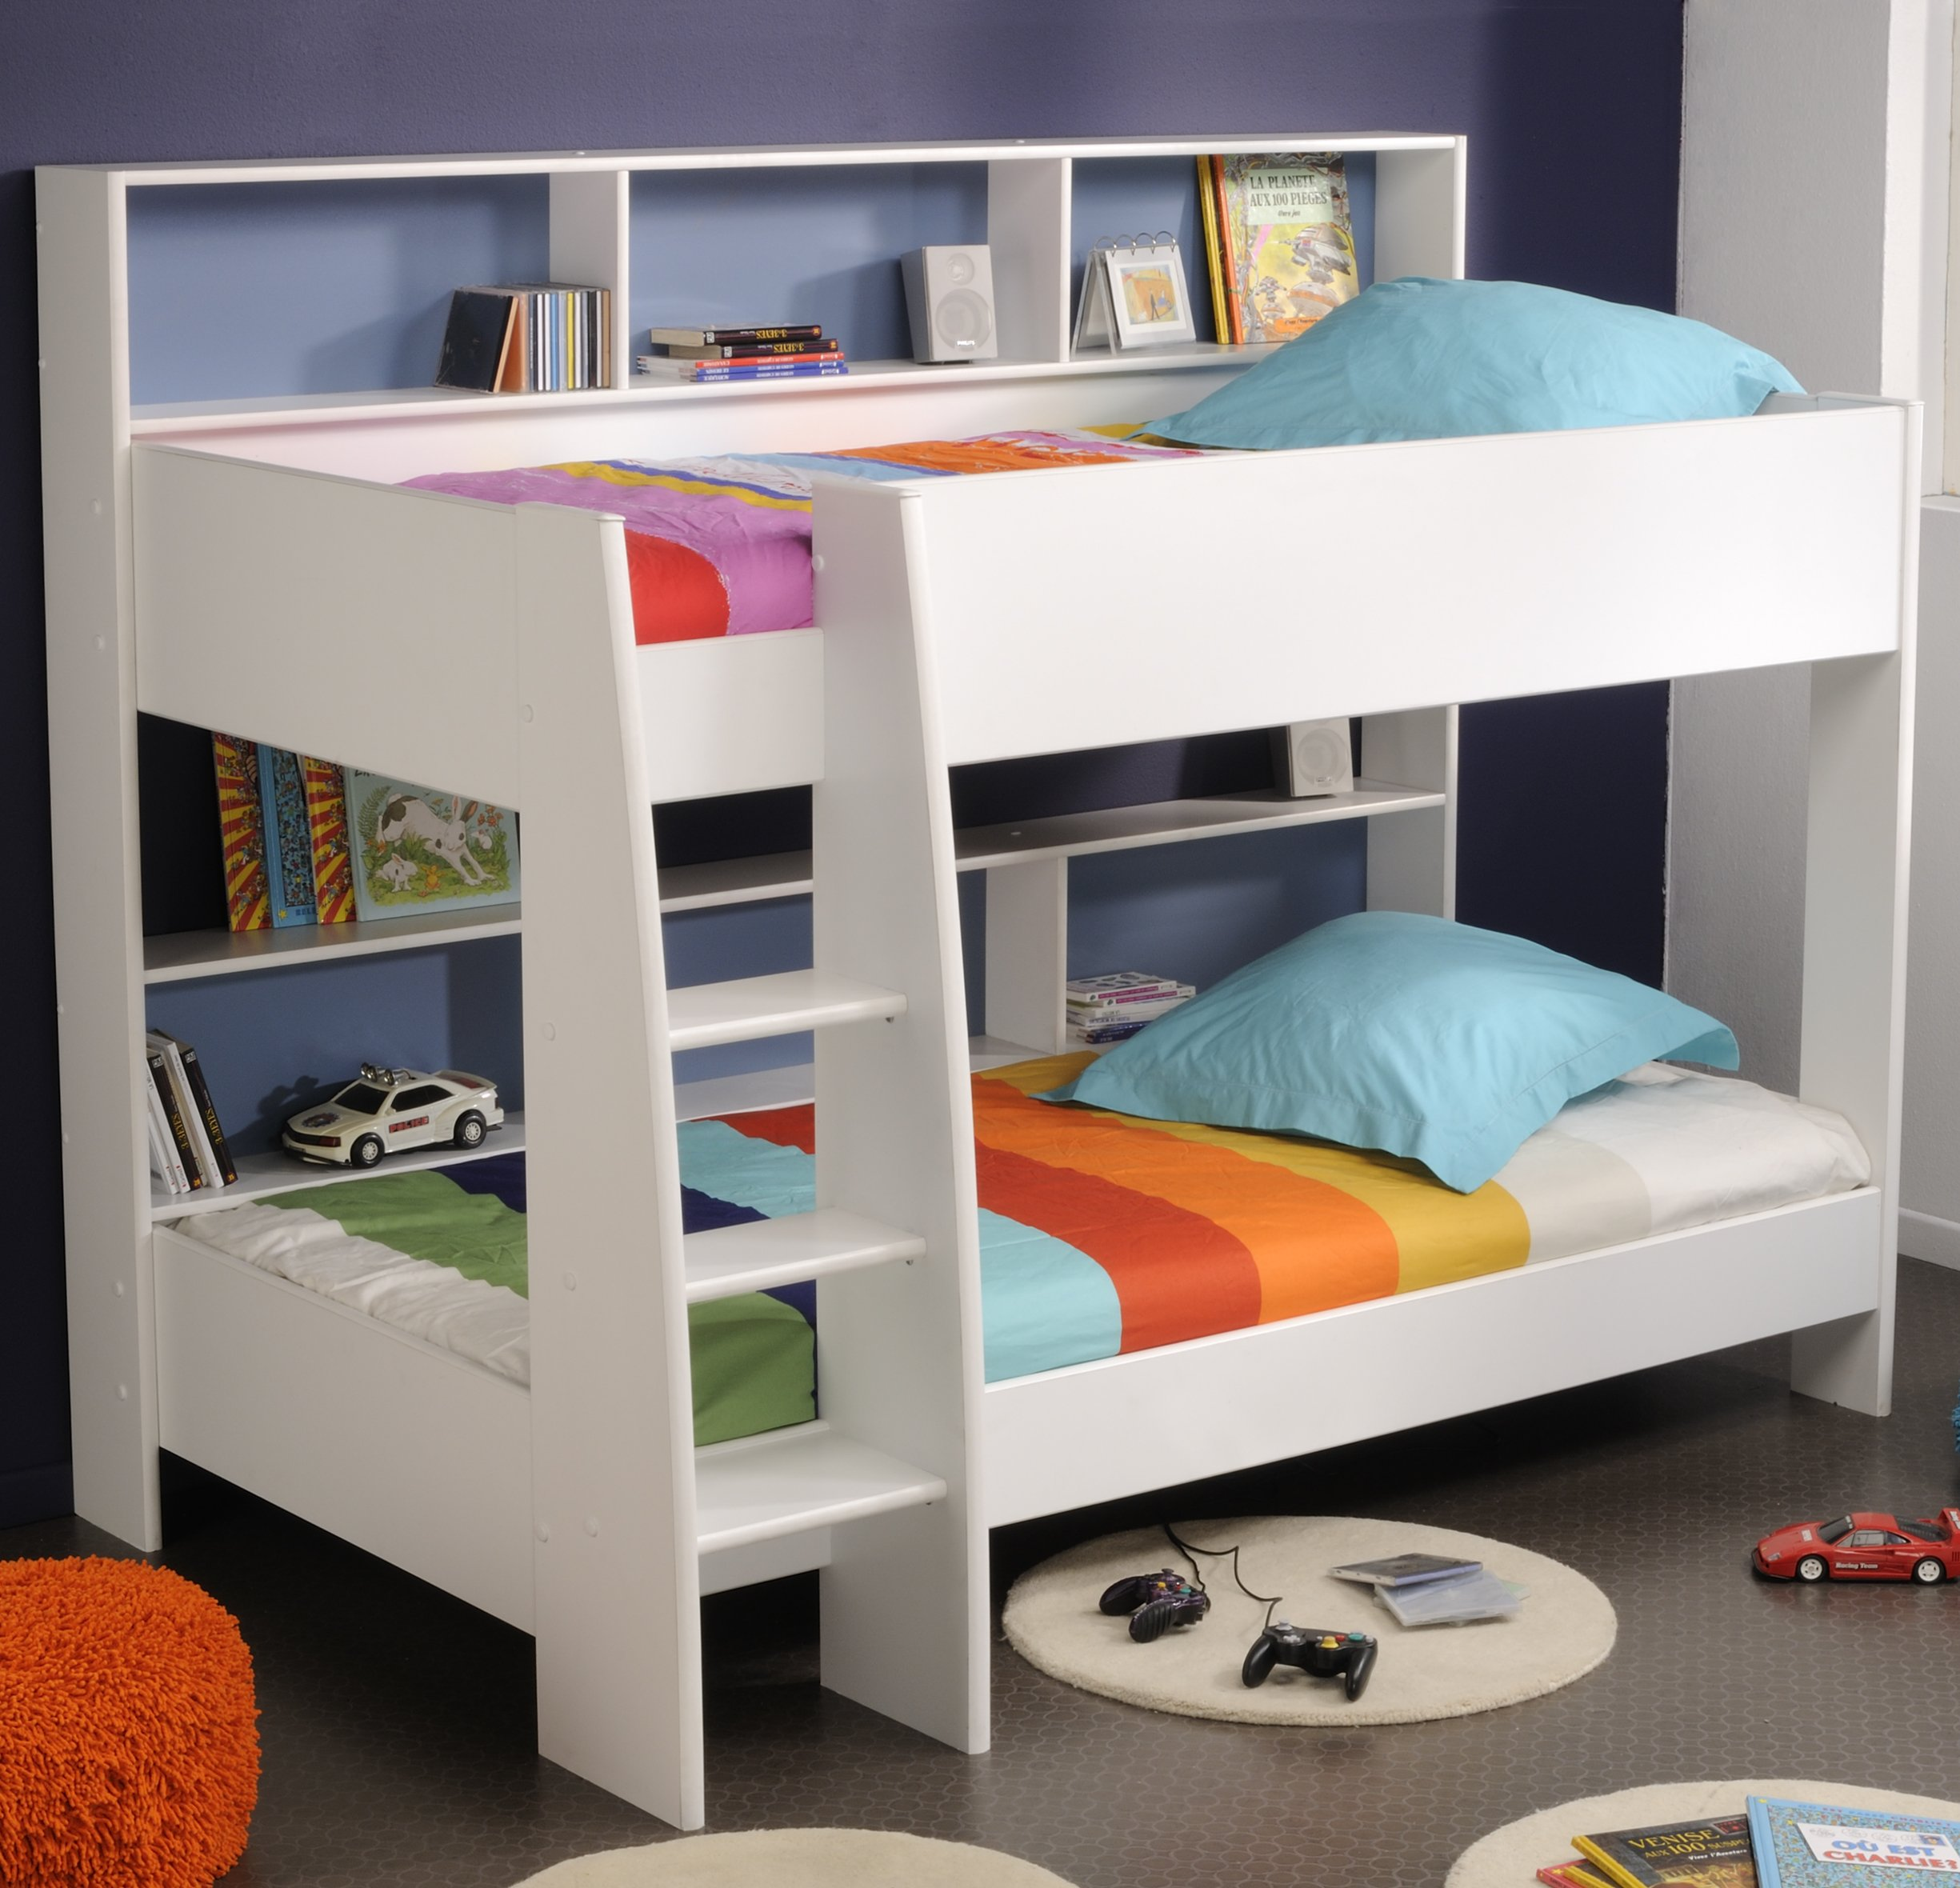 Best Bunk Beds For Small Rooms | Modern Bunk Beds | Contemporary Twin Bed